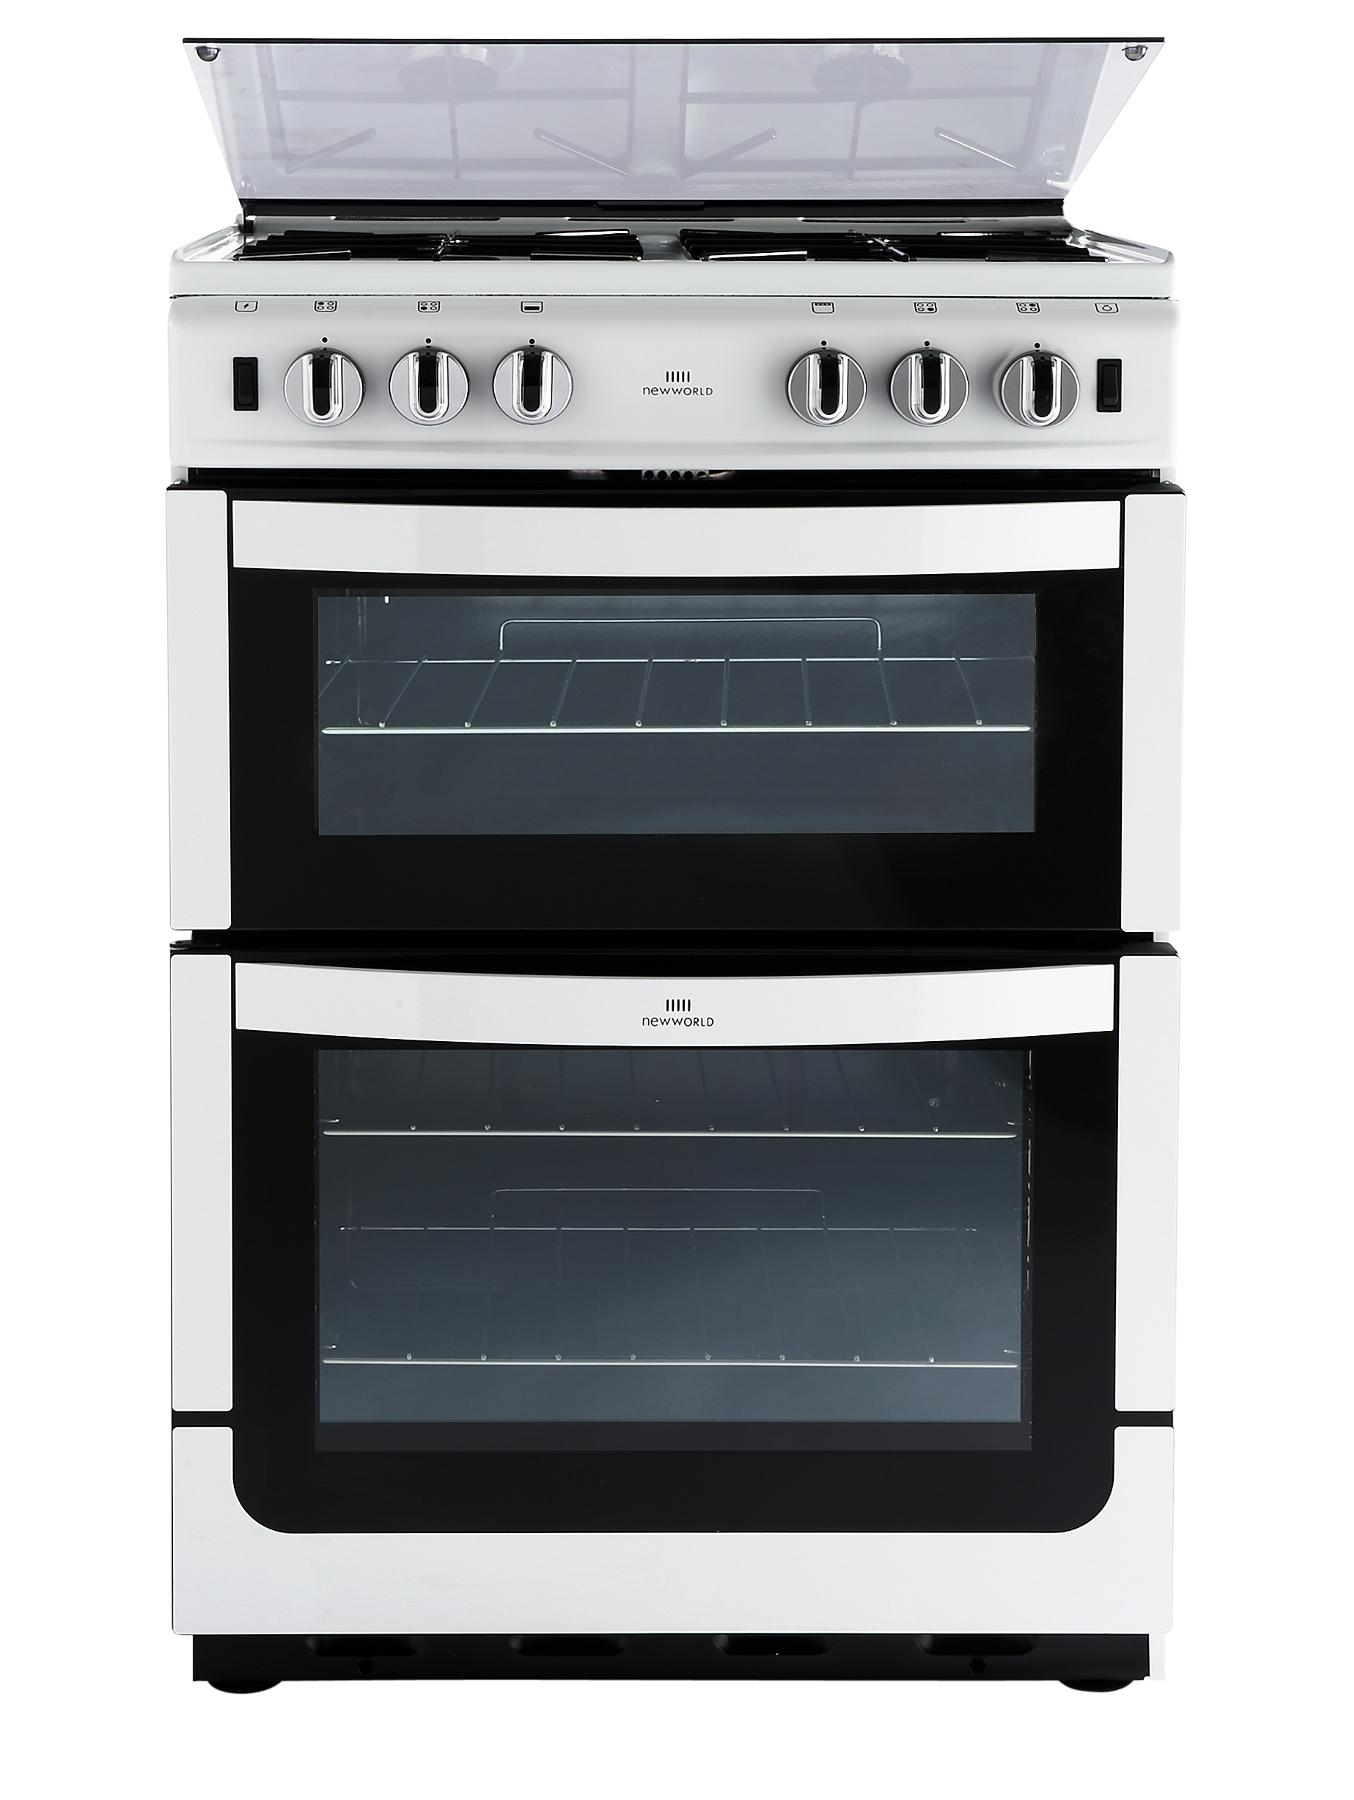 NW601GTCL 60cm Twin Cavity Gas Cooker - White